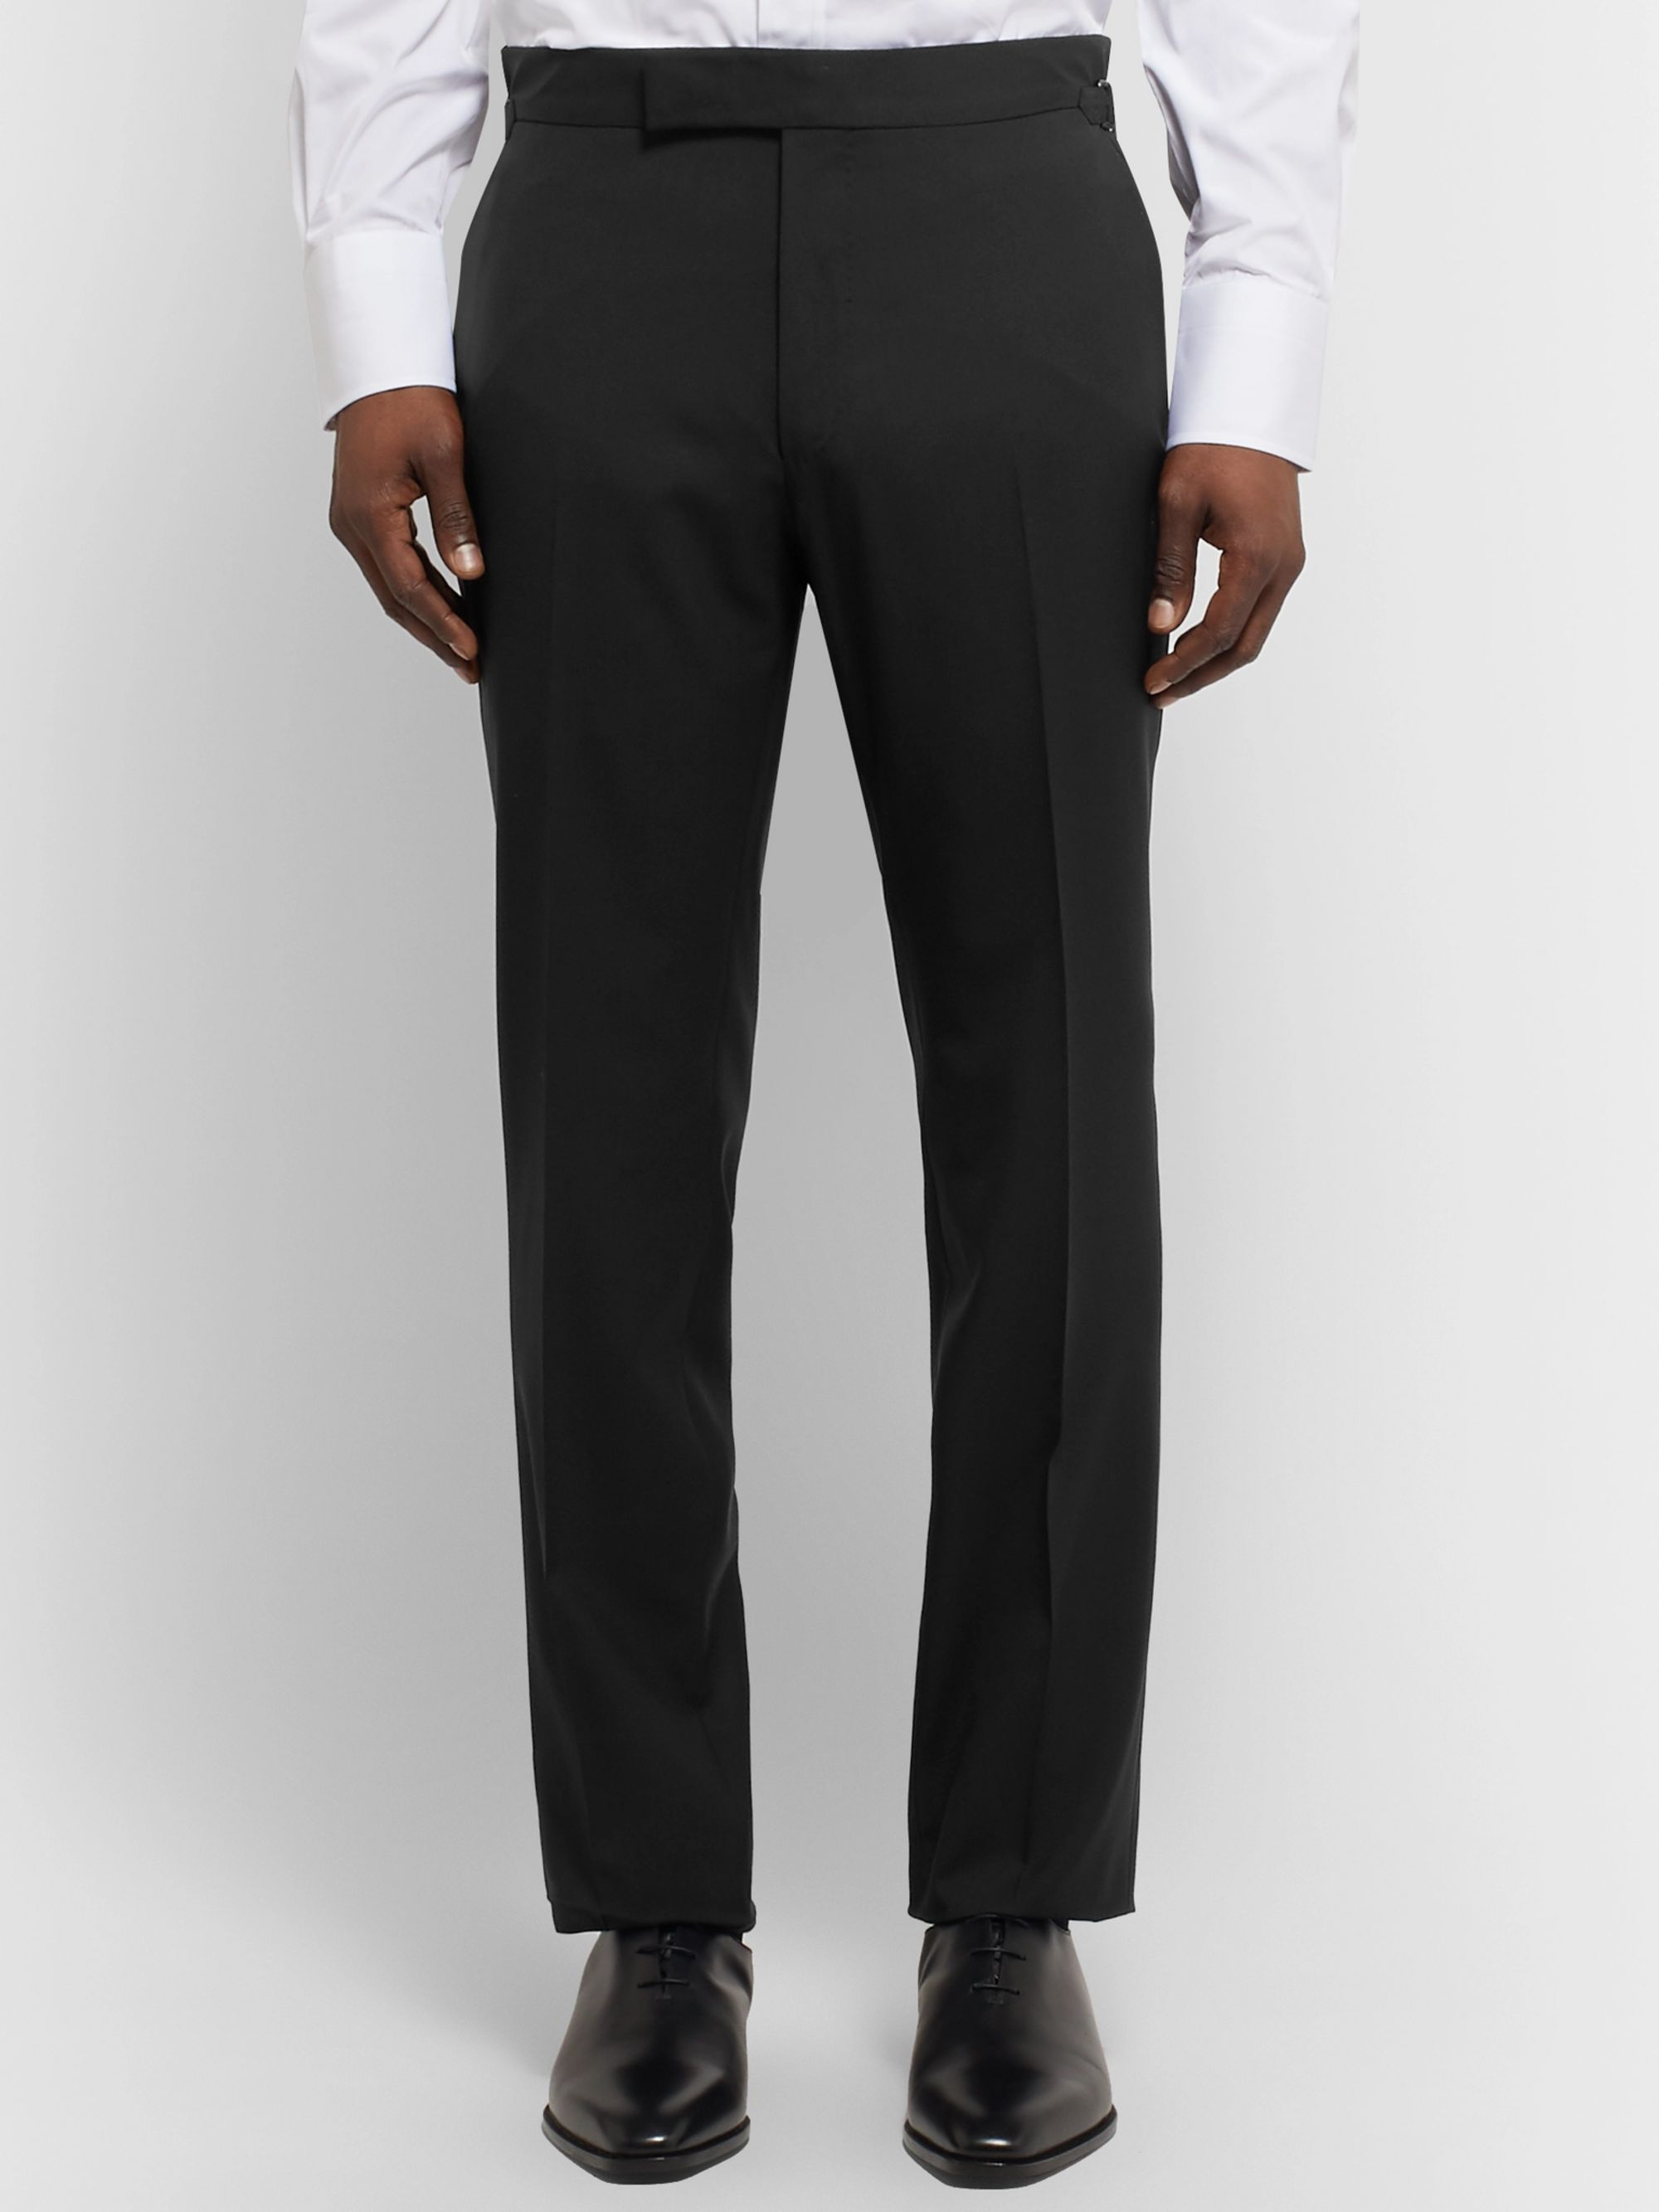 TOM FORD Black Shelton Slim-Fit Wool Suit Trousers